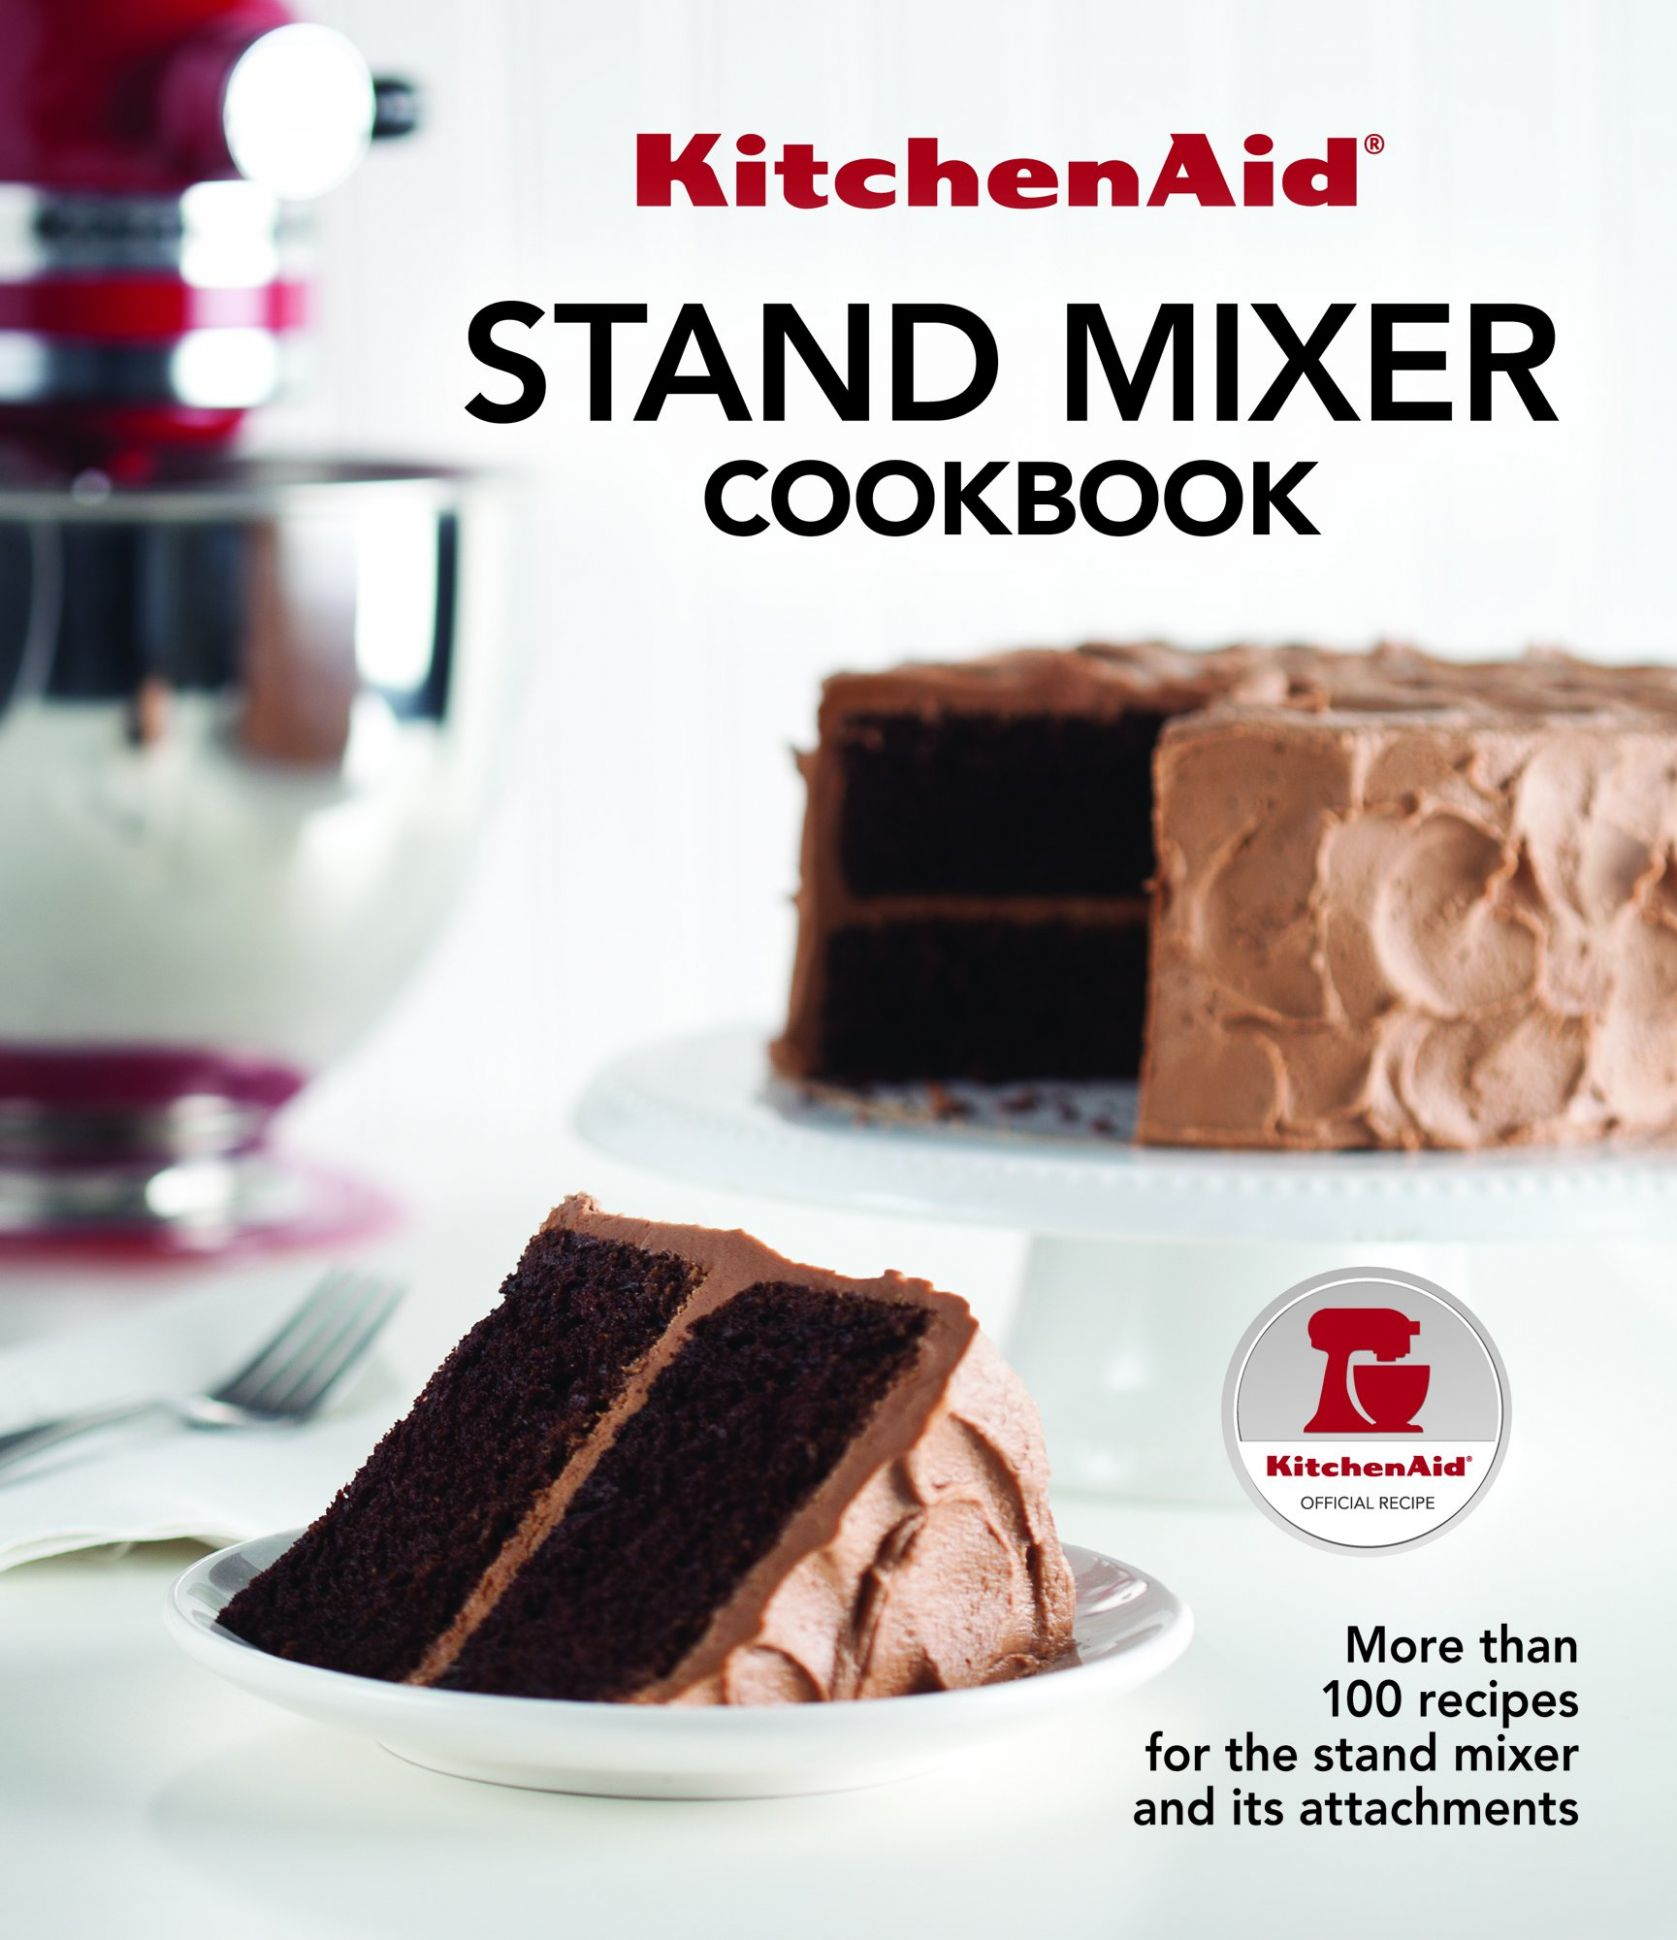 Amazon.in: Buy KitchenAid® Stand Mixer Cookbook Book Online at Low ..